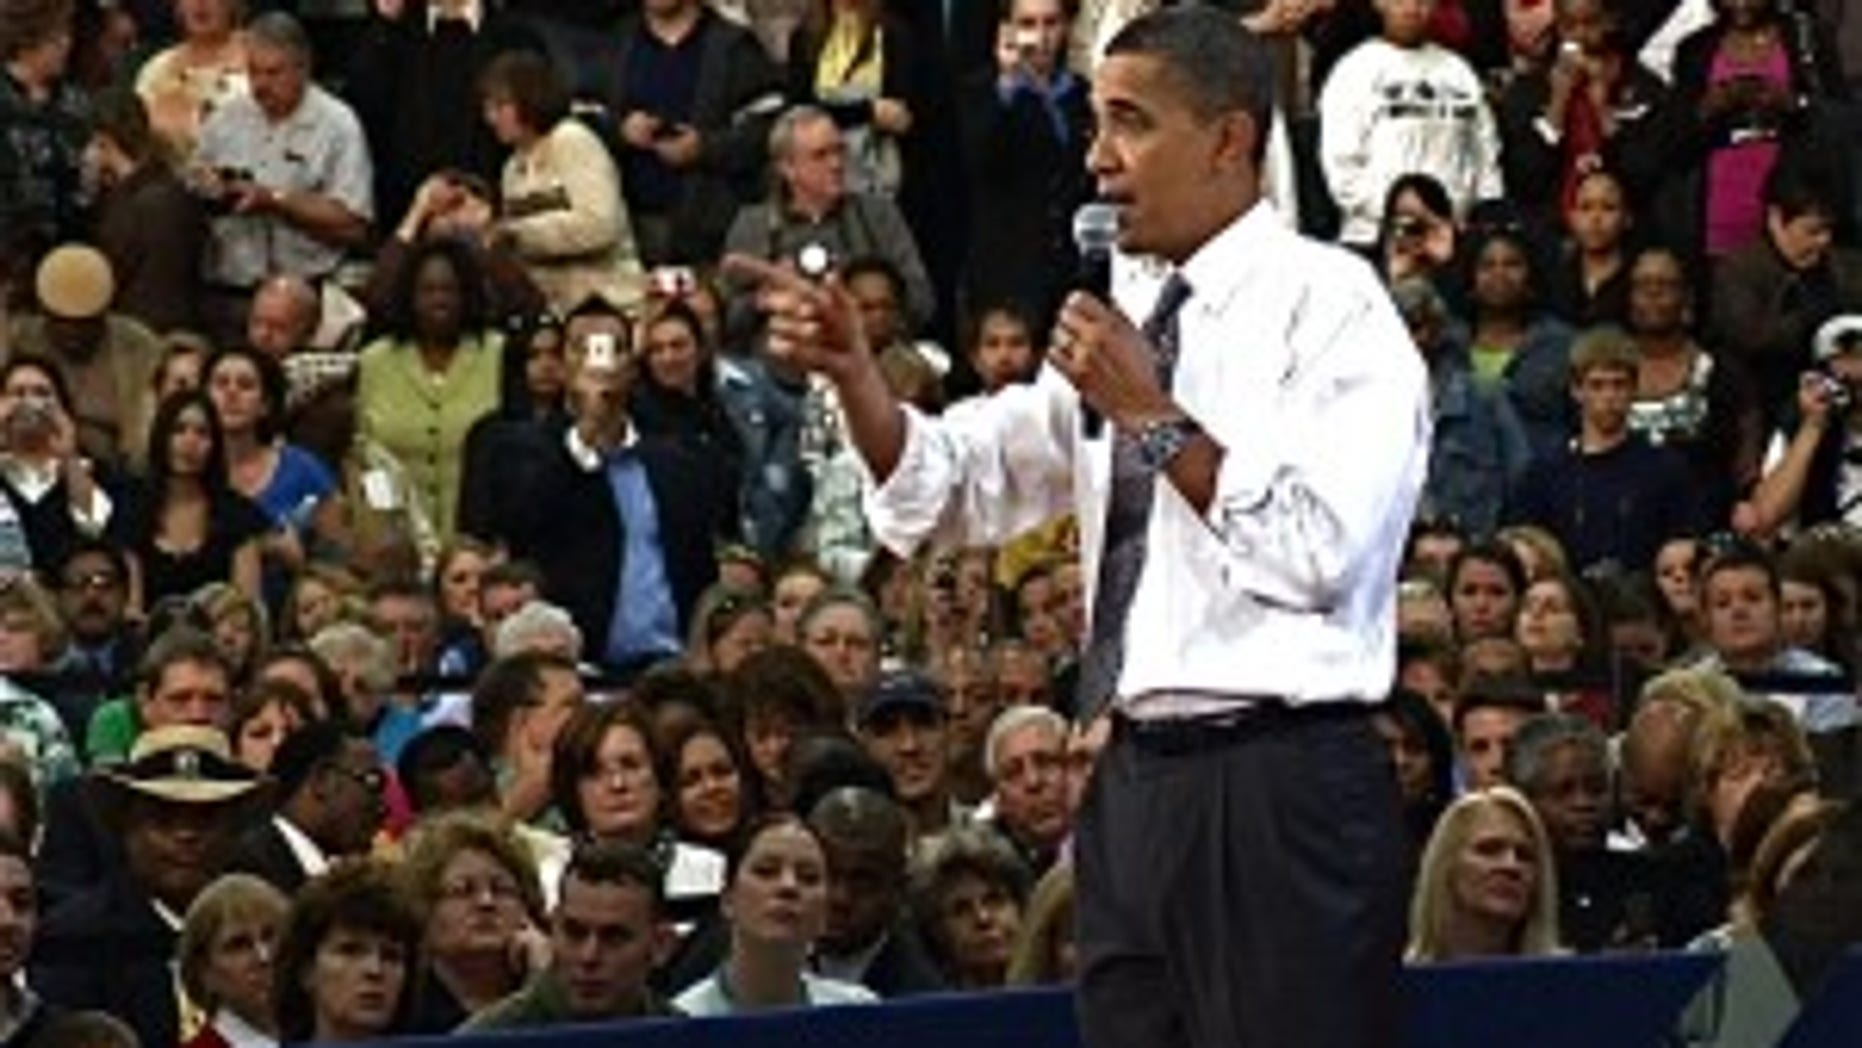 President Obama addresses a town hall audience in Tampa, FL (photo by Craig Savage)